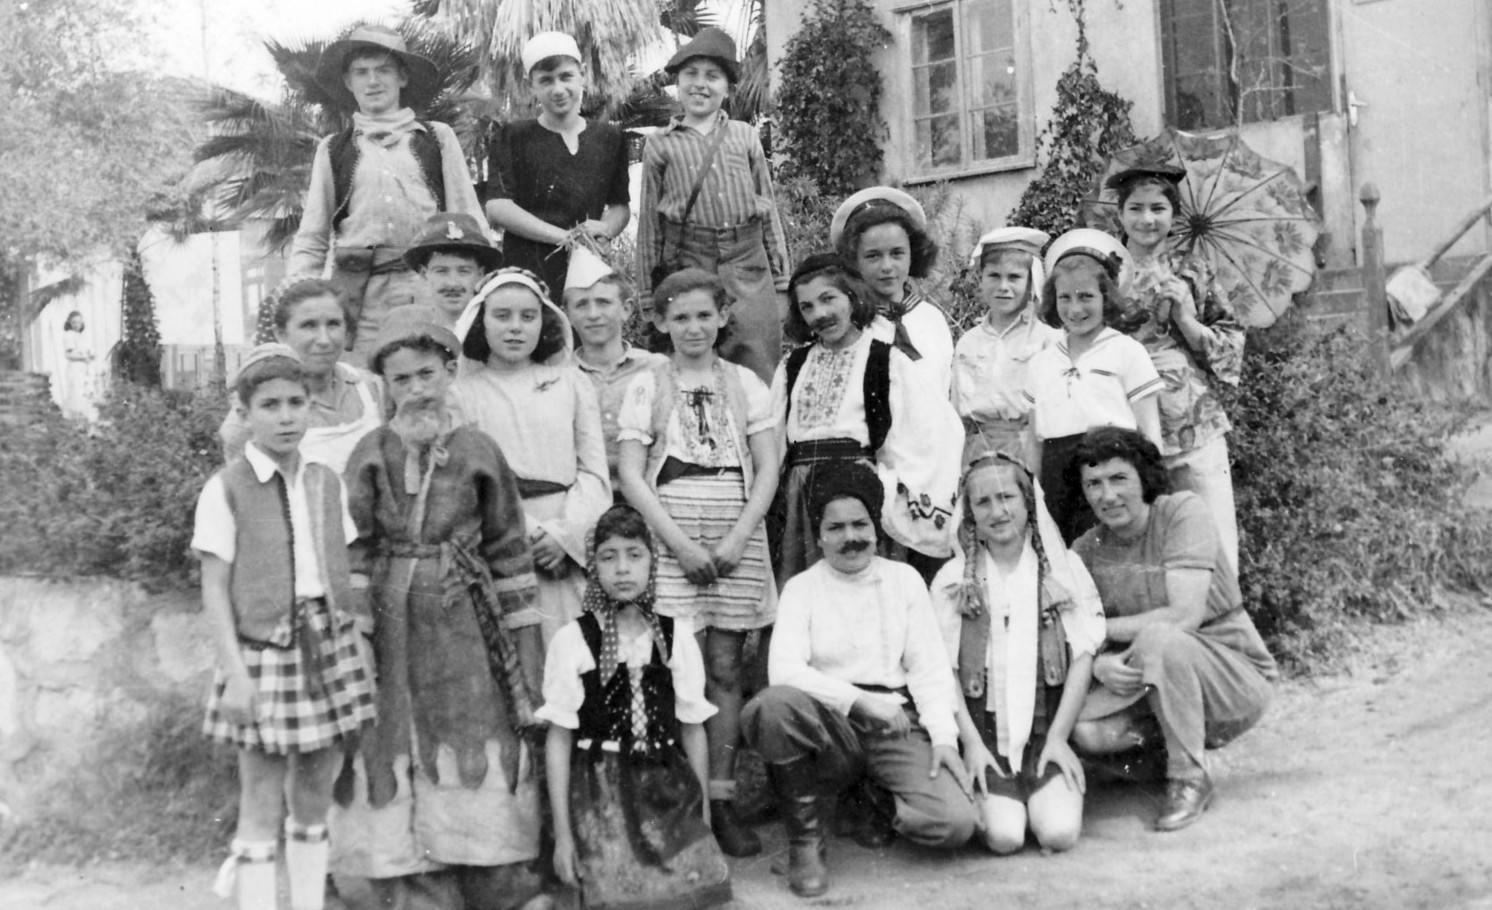 https://i1.wp.com/upload.wikimedia.org/wikipedia/commons/a/a9/PikiWiki_Israel_8502_Gan-Shmuel_-_Purim_with_children_in_1946.jpg